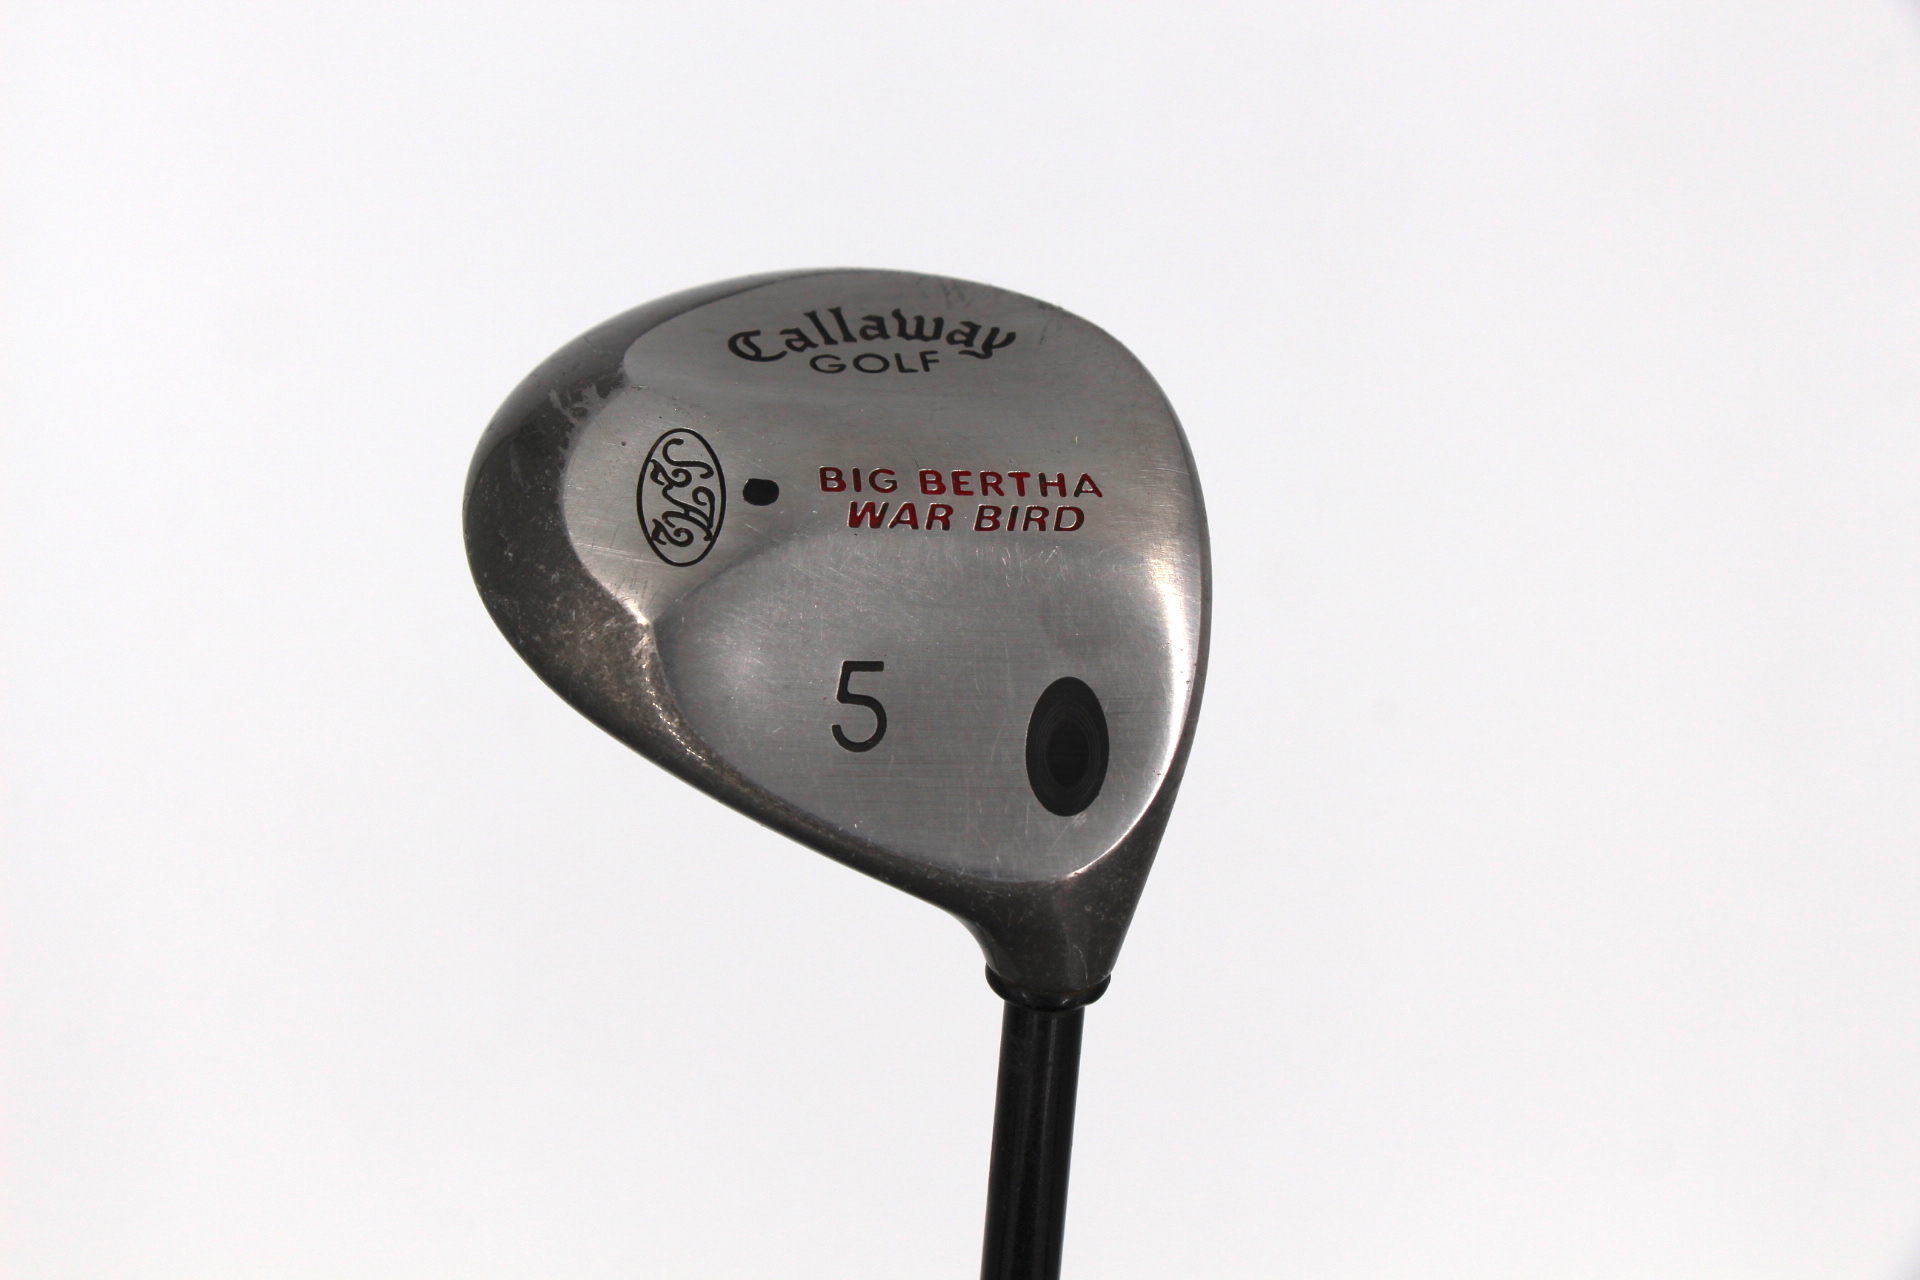 Callaway Big Bertha Warbird 5-Wood Fairway